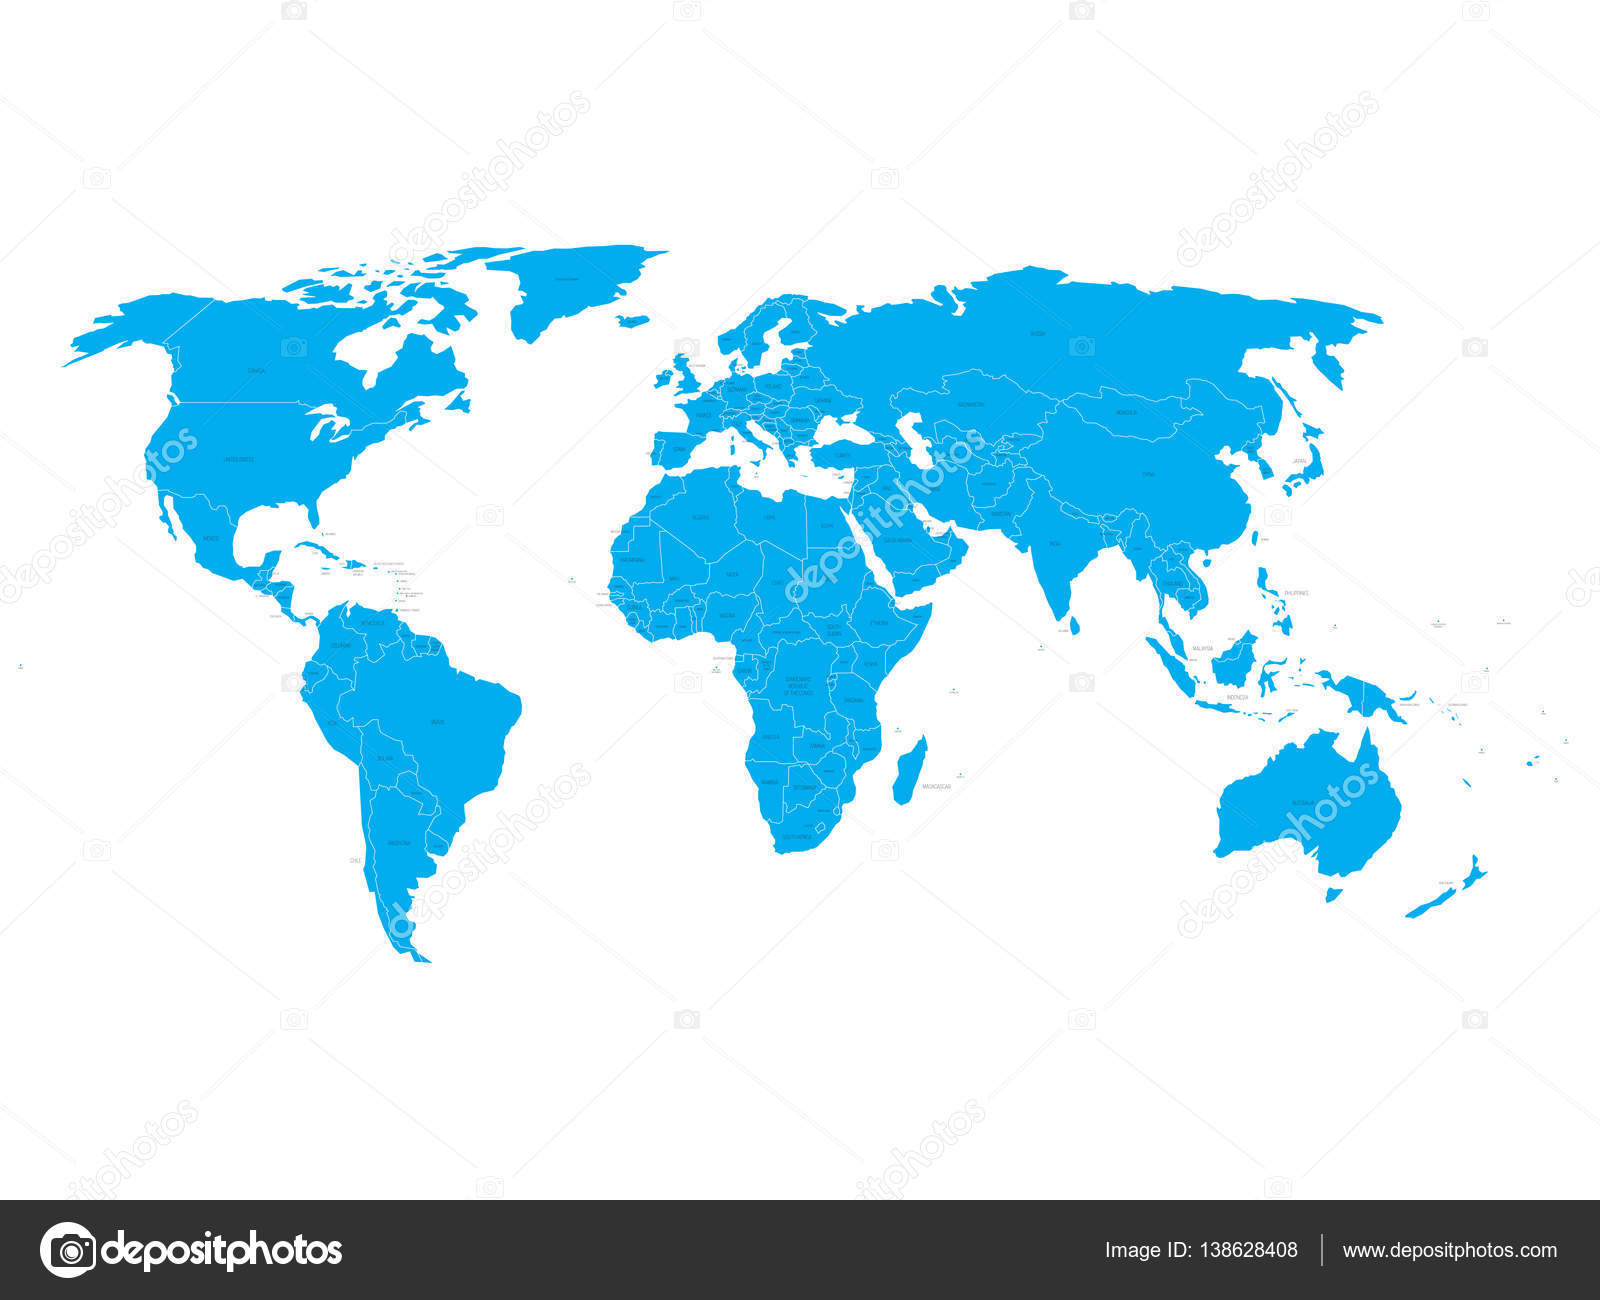 Vector world map with state name labels blue land with black text vector world map with state name labels blue land with black text on white background gumiabroncs Image collections